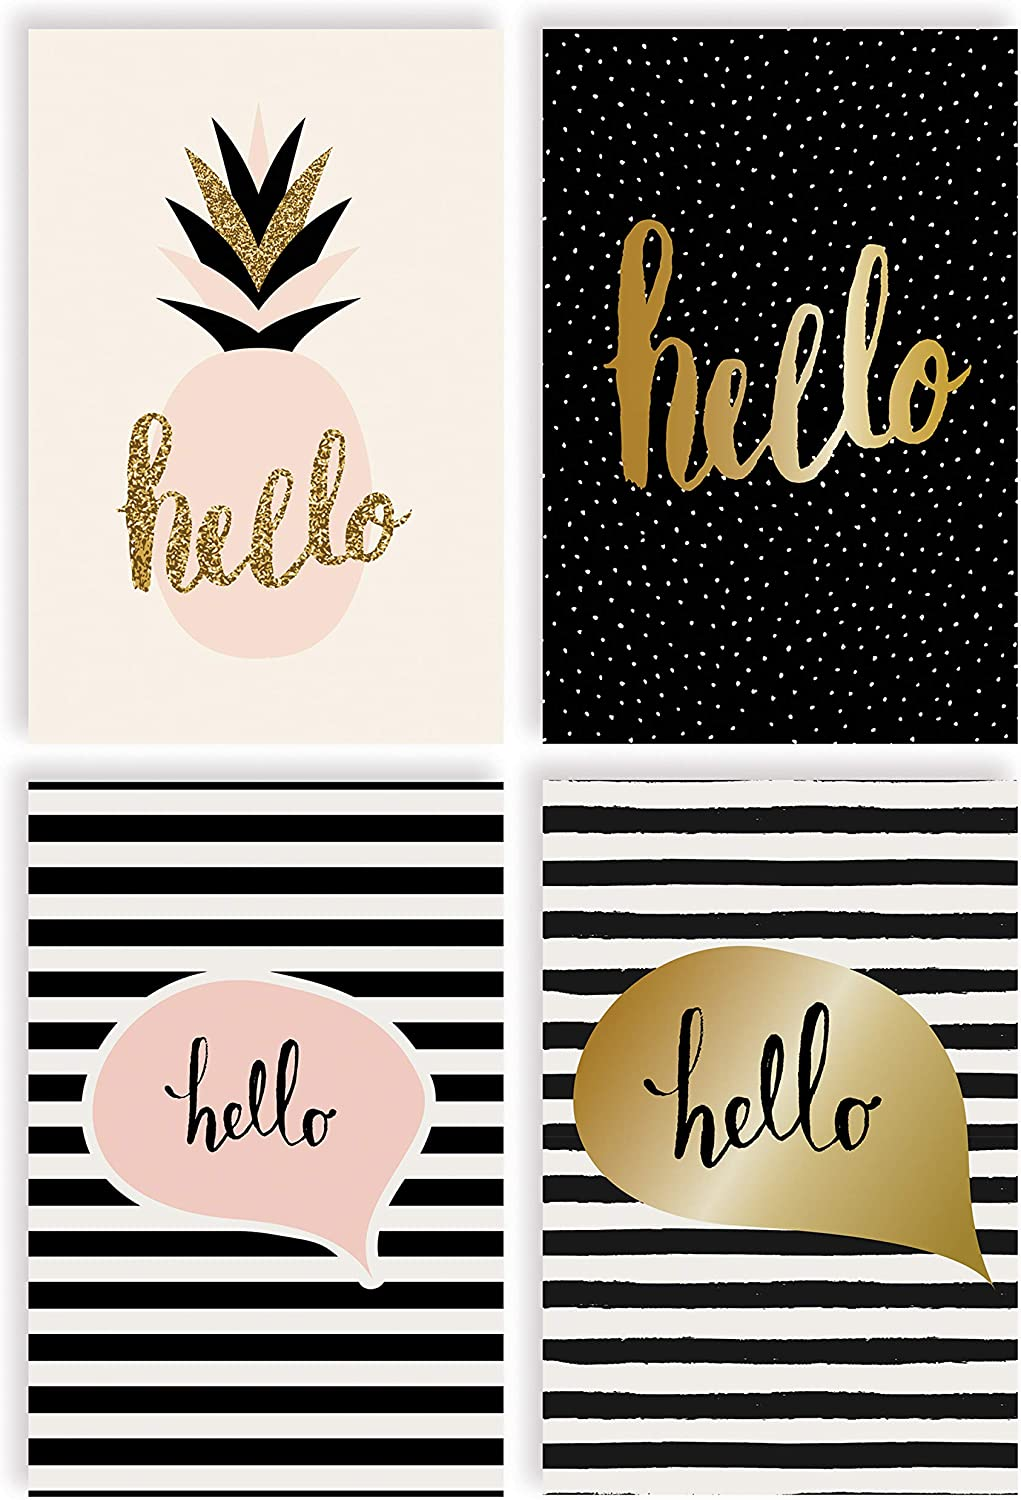 Hello Greeting Cards, All Occasion Cards, 100-Pack, 4 x 6 inch, 4 Elegant Cover Designs, Blank Inside, by Better Office Products, Thinking of You Cards, Hello Note Cards, with Envelopes, 100 Pack